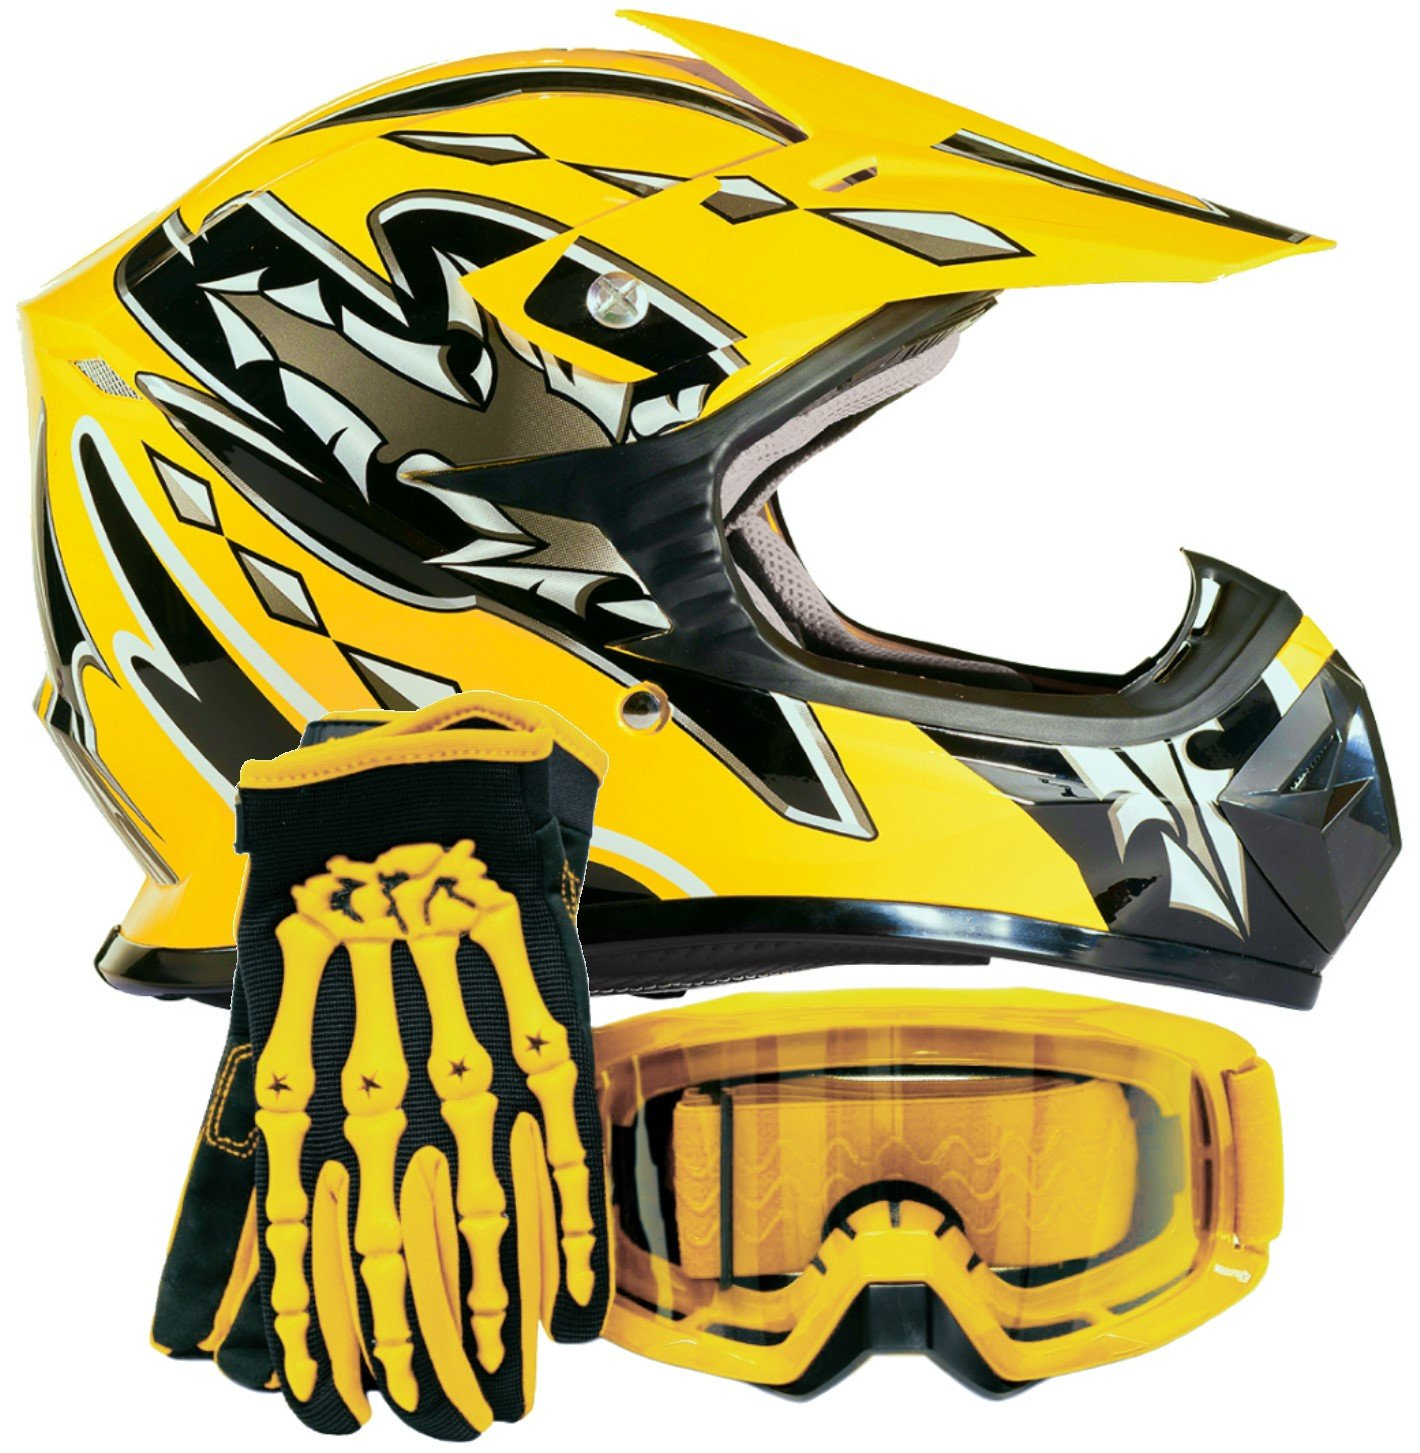 Youth Kids Offroad Gear Combo Helmet Gloves Goggles DOT Motocross ATV Dirt Bike MX Motorcycle Yellow, X-Large